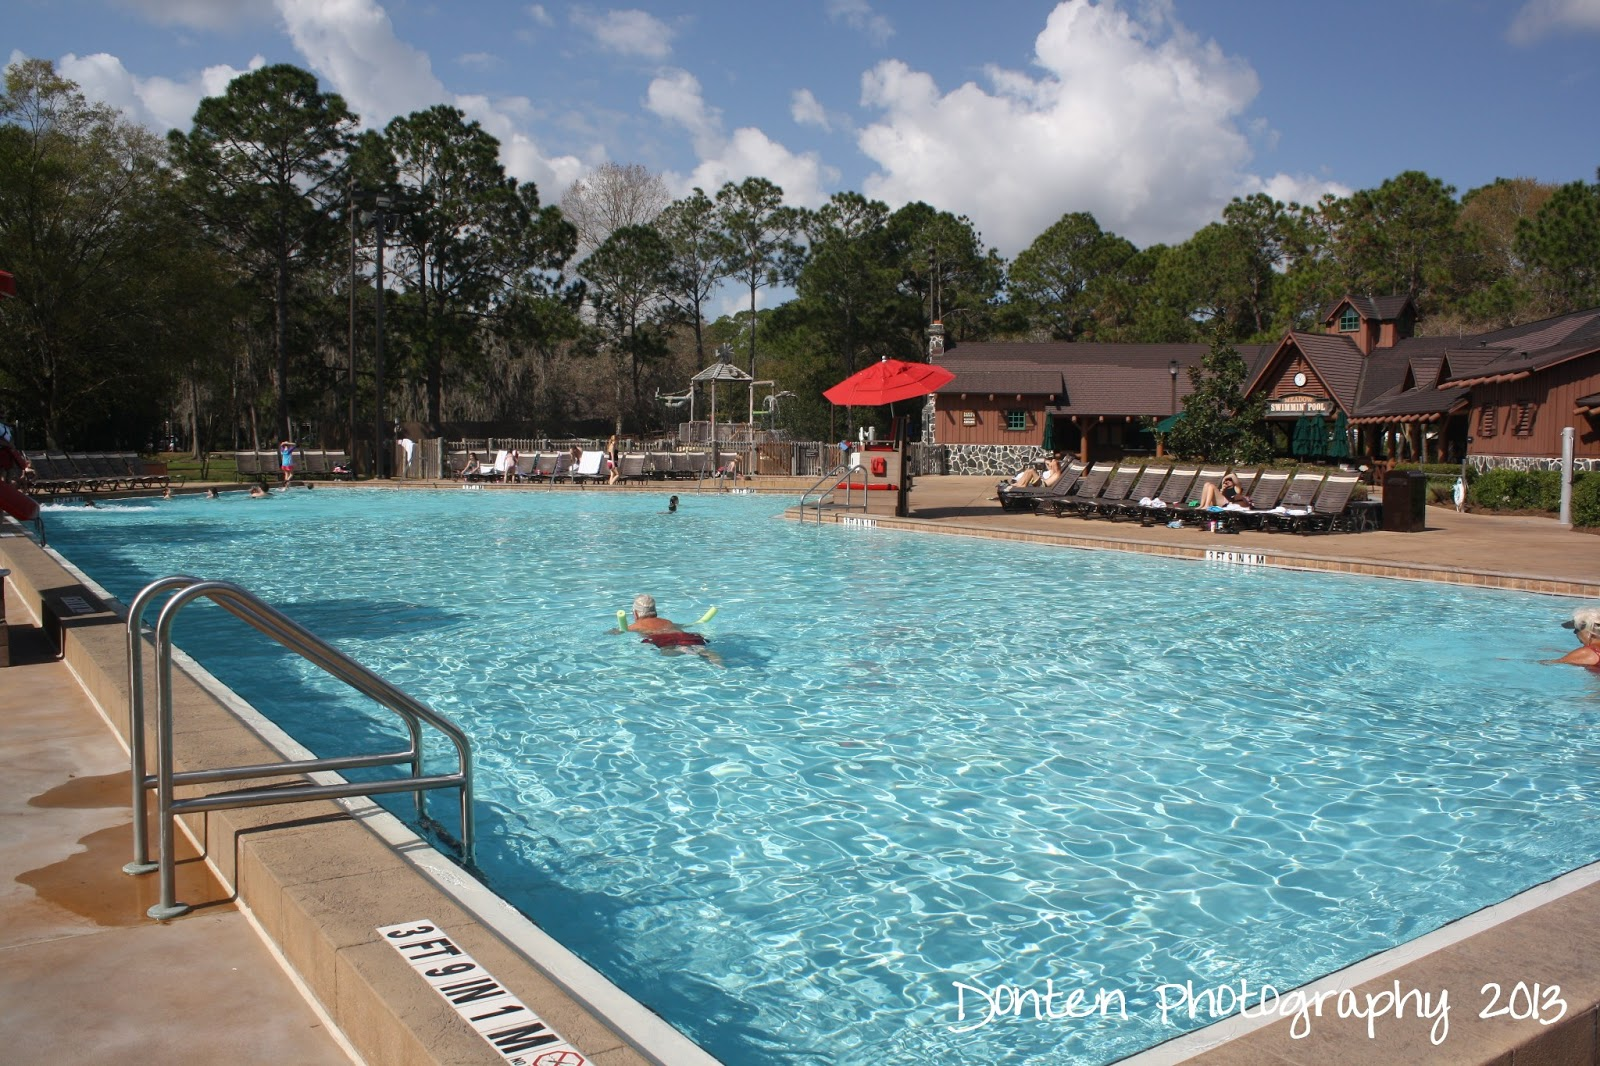 Photo Of The Day Meadows Swimming Pool Donten Photography